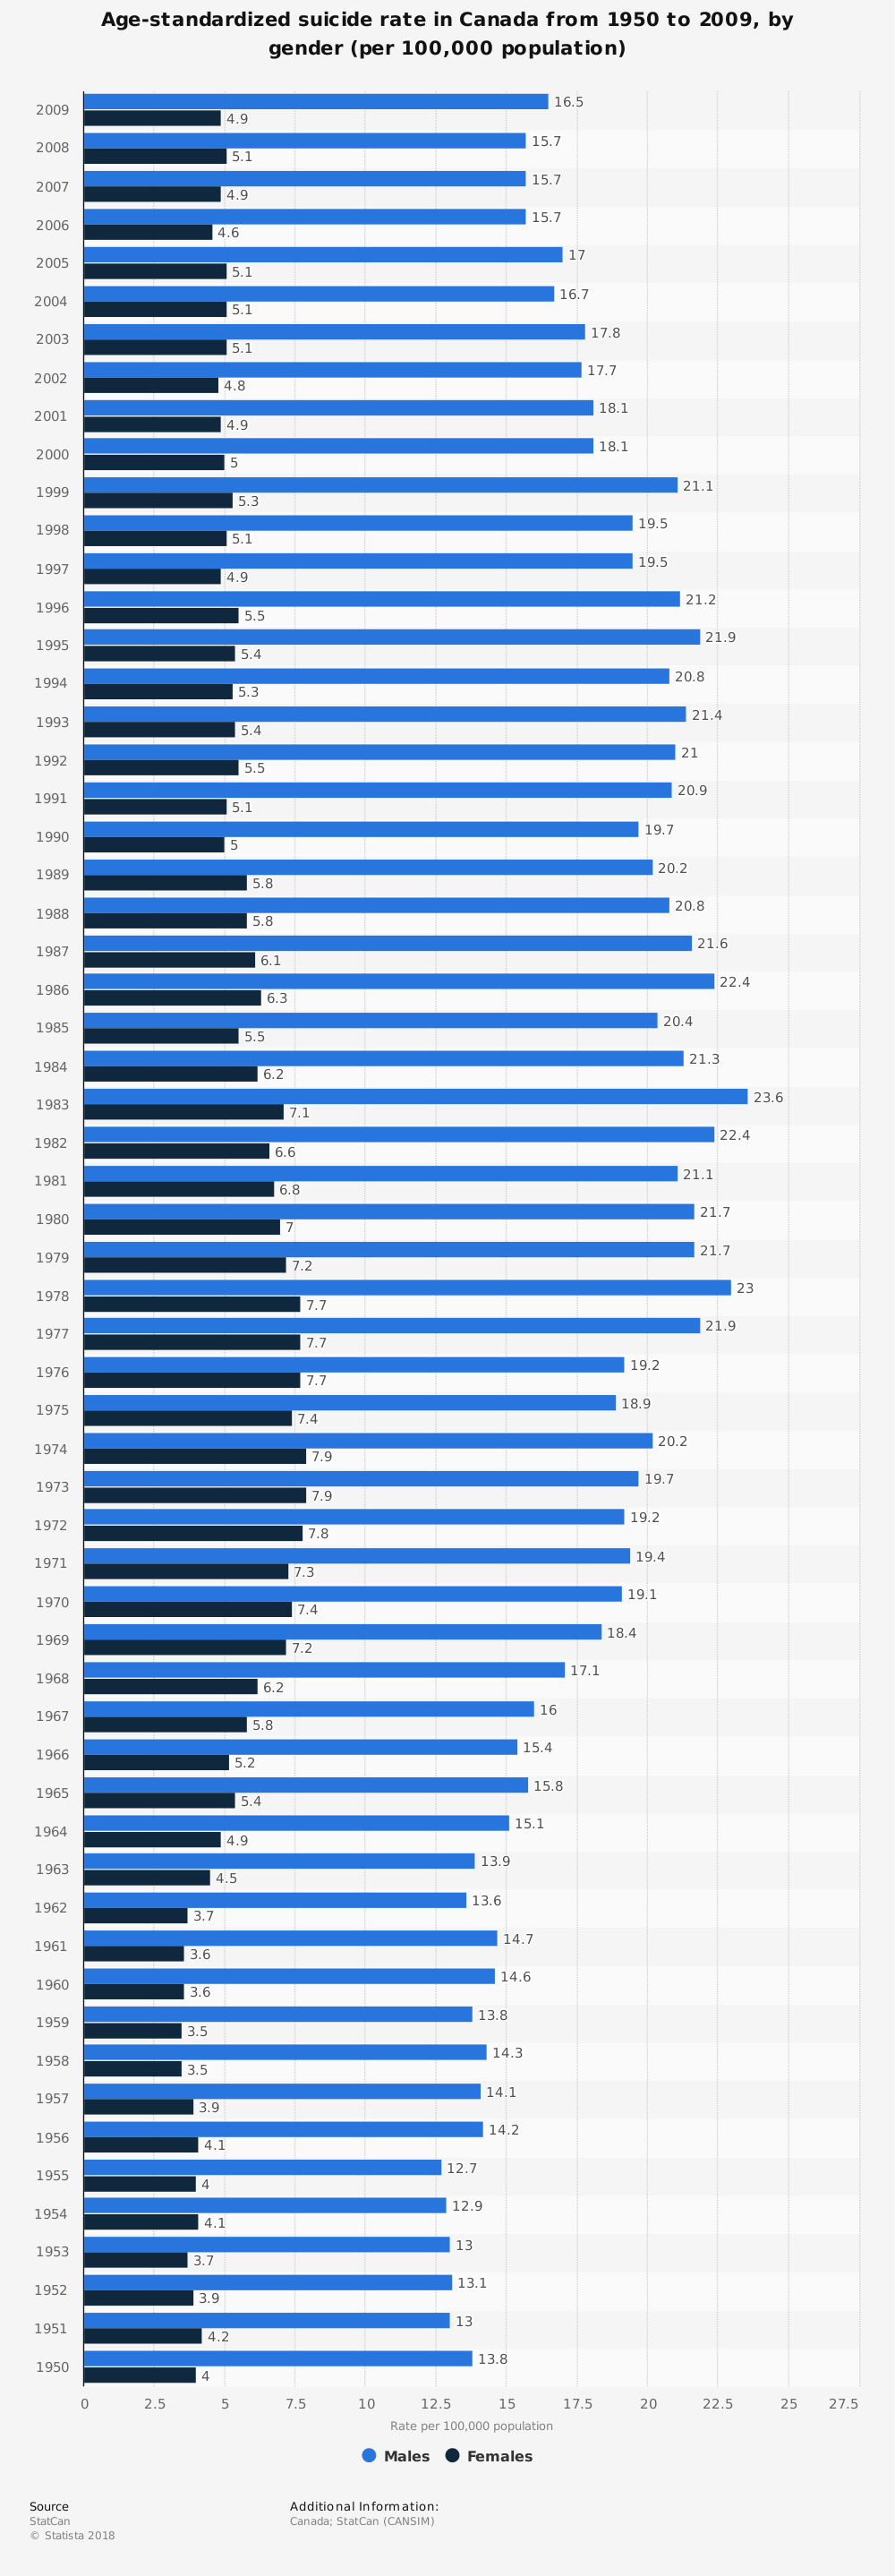 Statistic: Age-standardized suicide rate in Canada from 1950 to 2009, by gender (per 100,000 population) | Statista